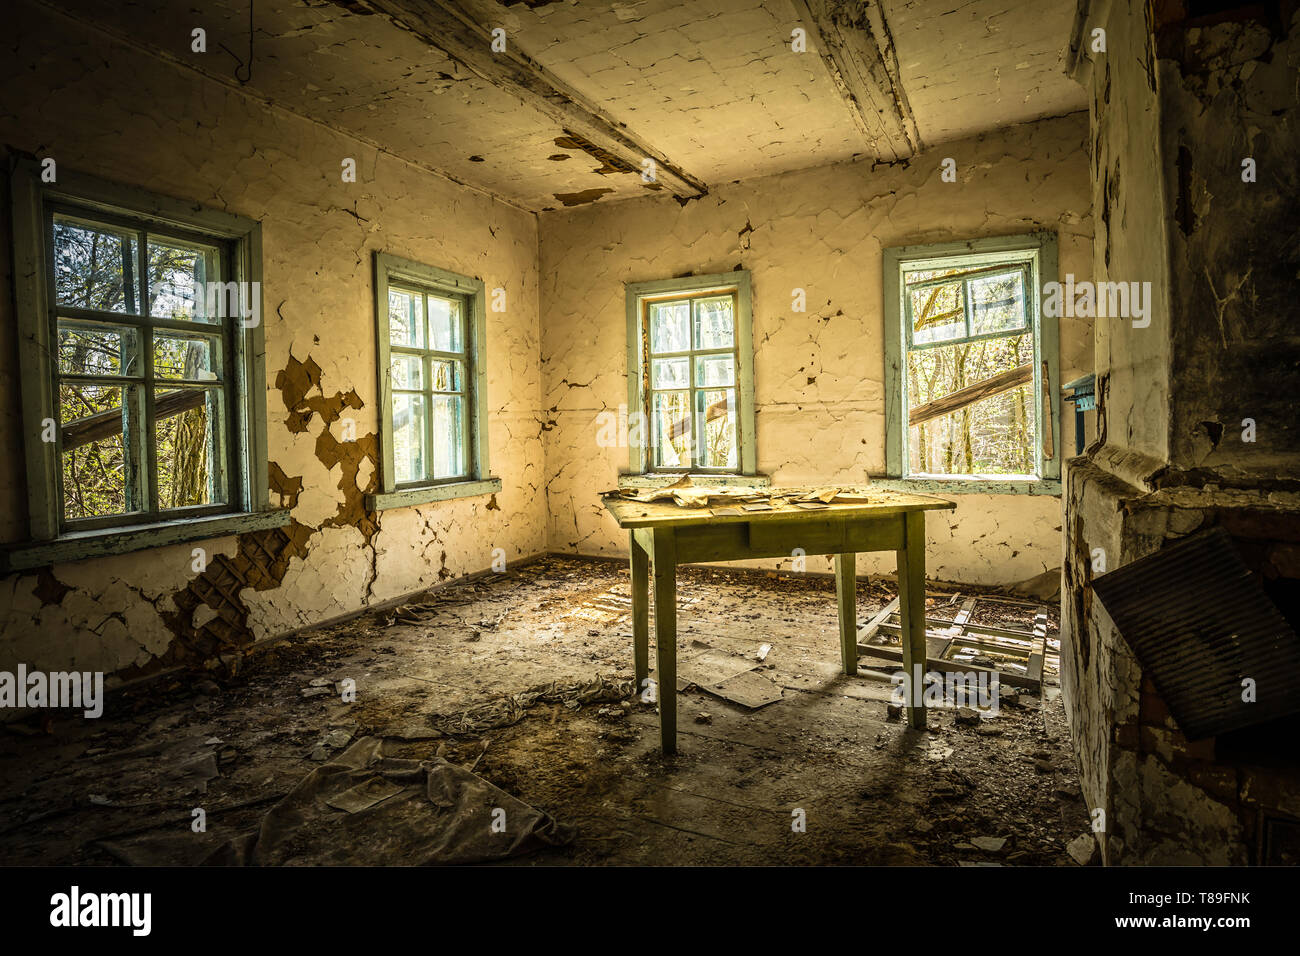 Abandoned school with ghost in Belarus Chernobyl exclusion zone, recently opened for the public from april 2019. - Stock Image